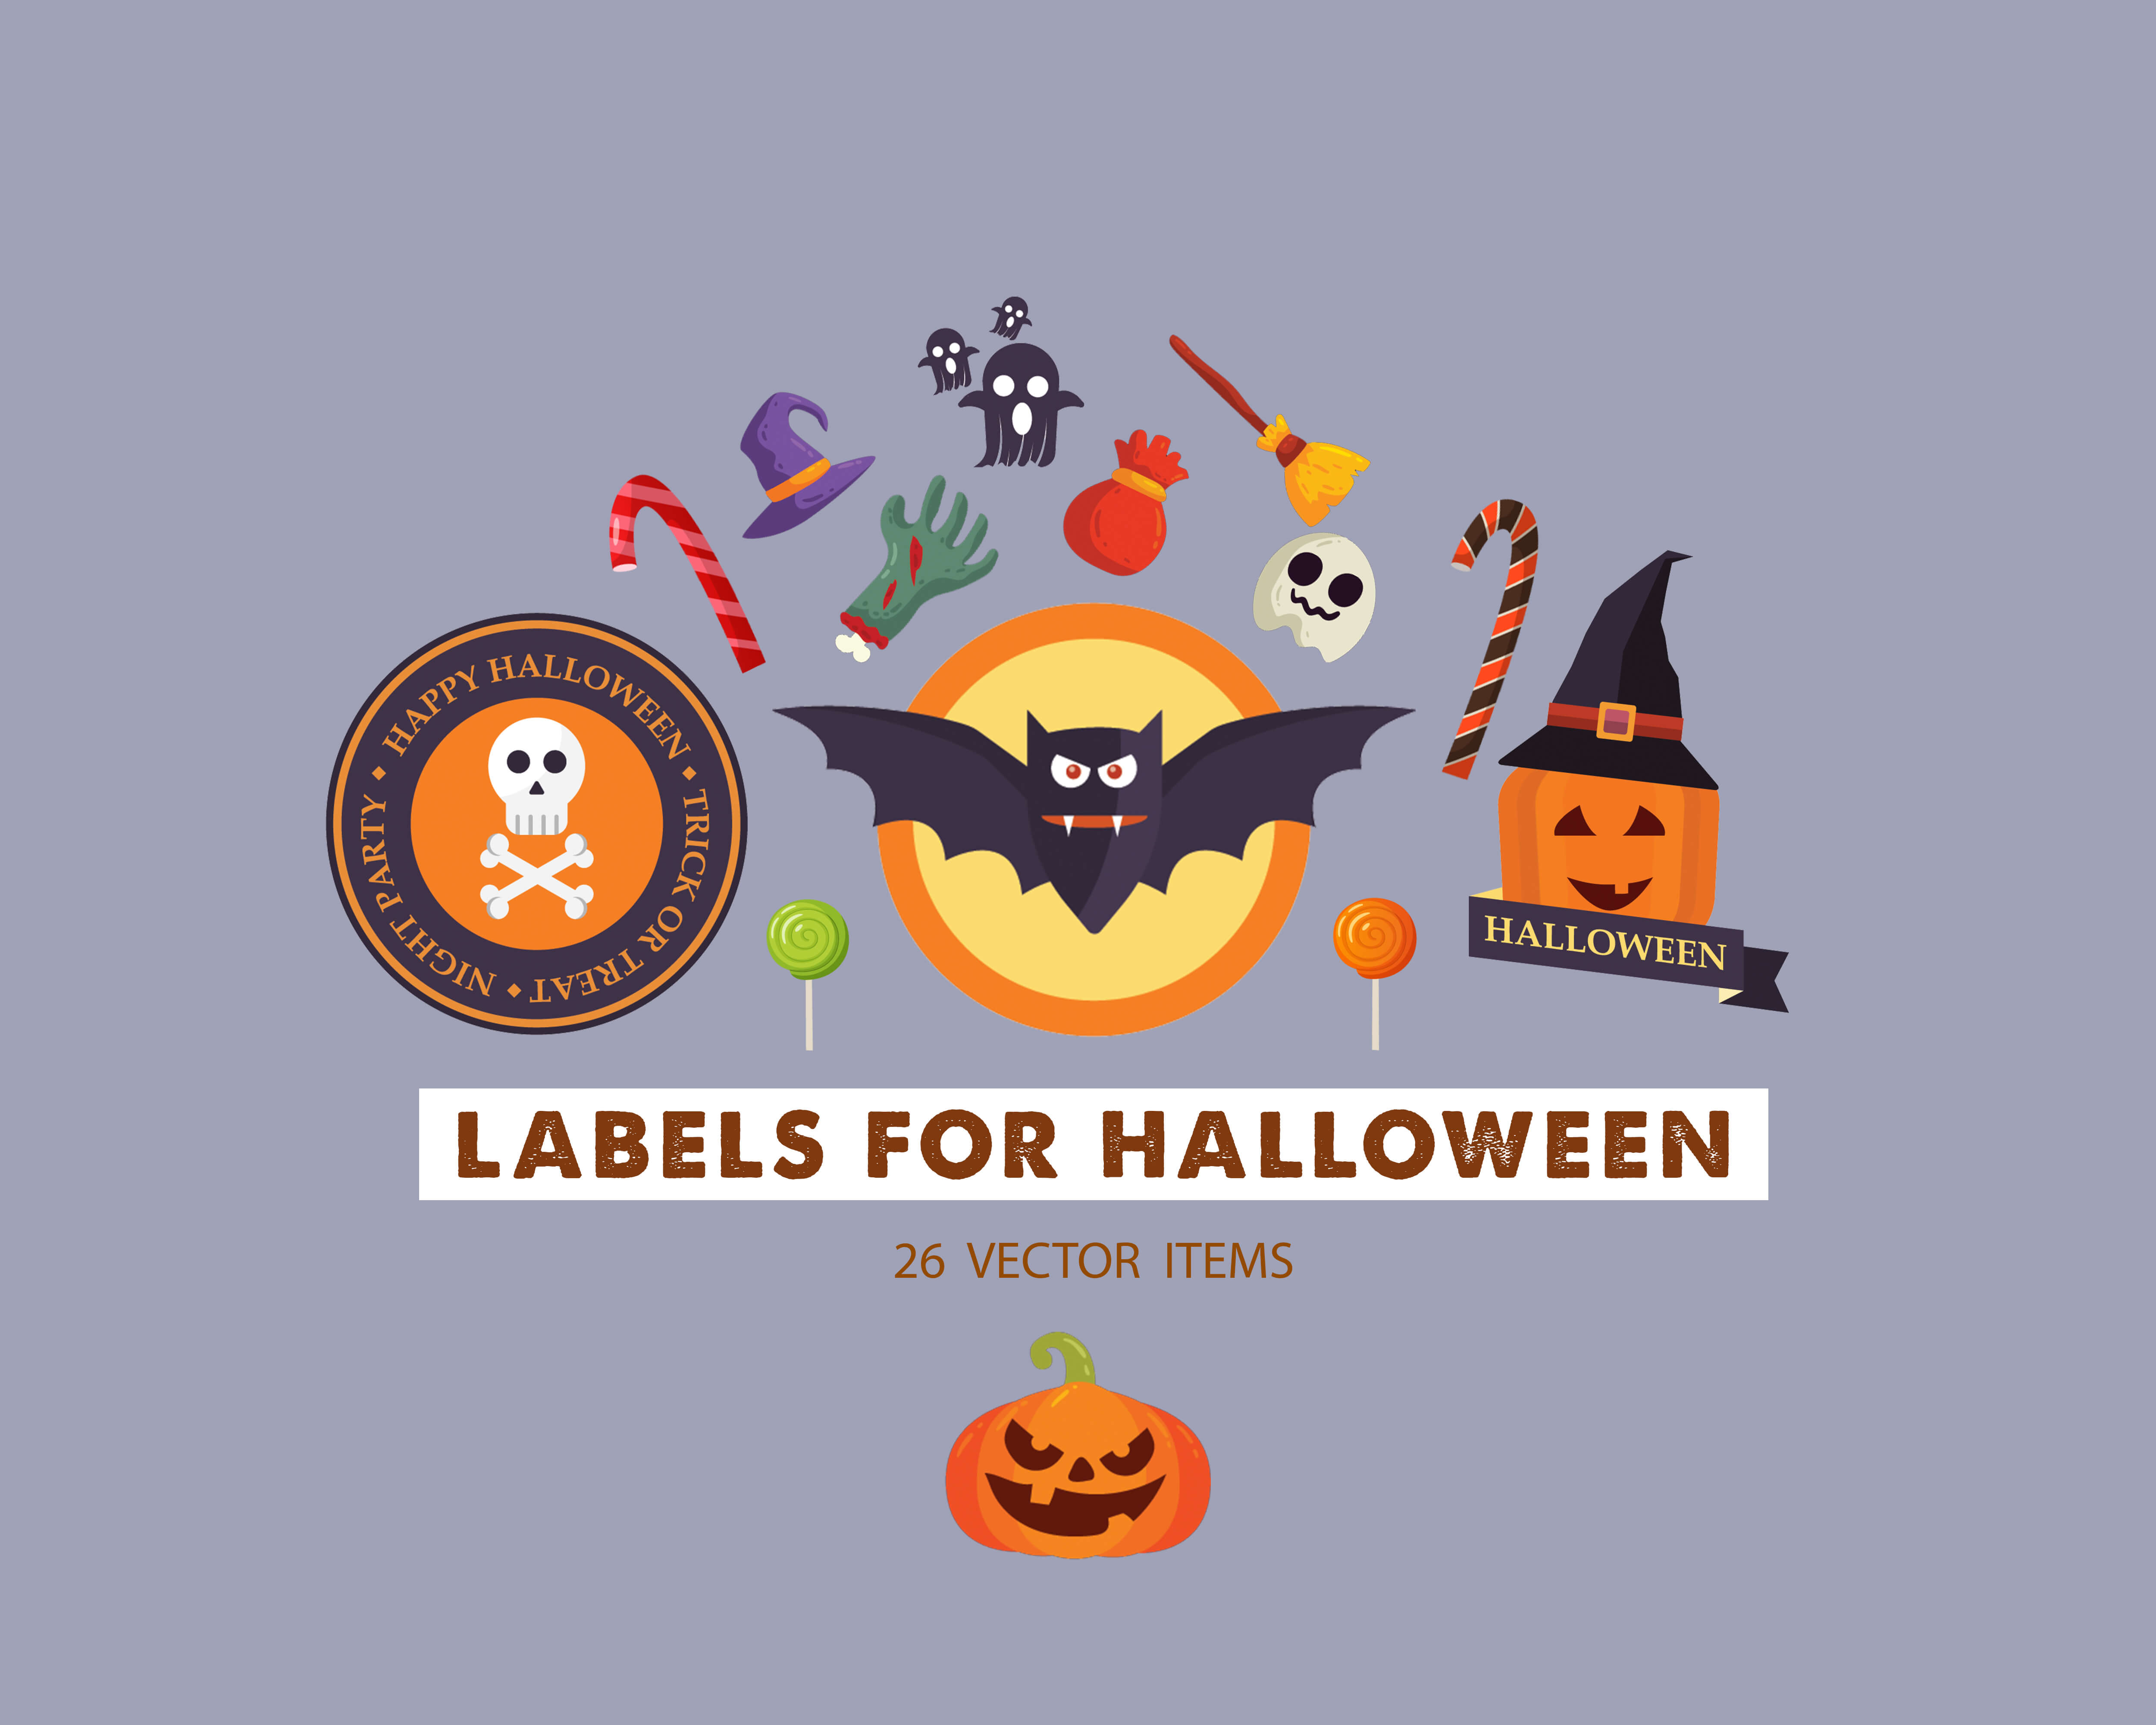 Spooky Vector Images - 26 Labels For Halloween